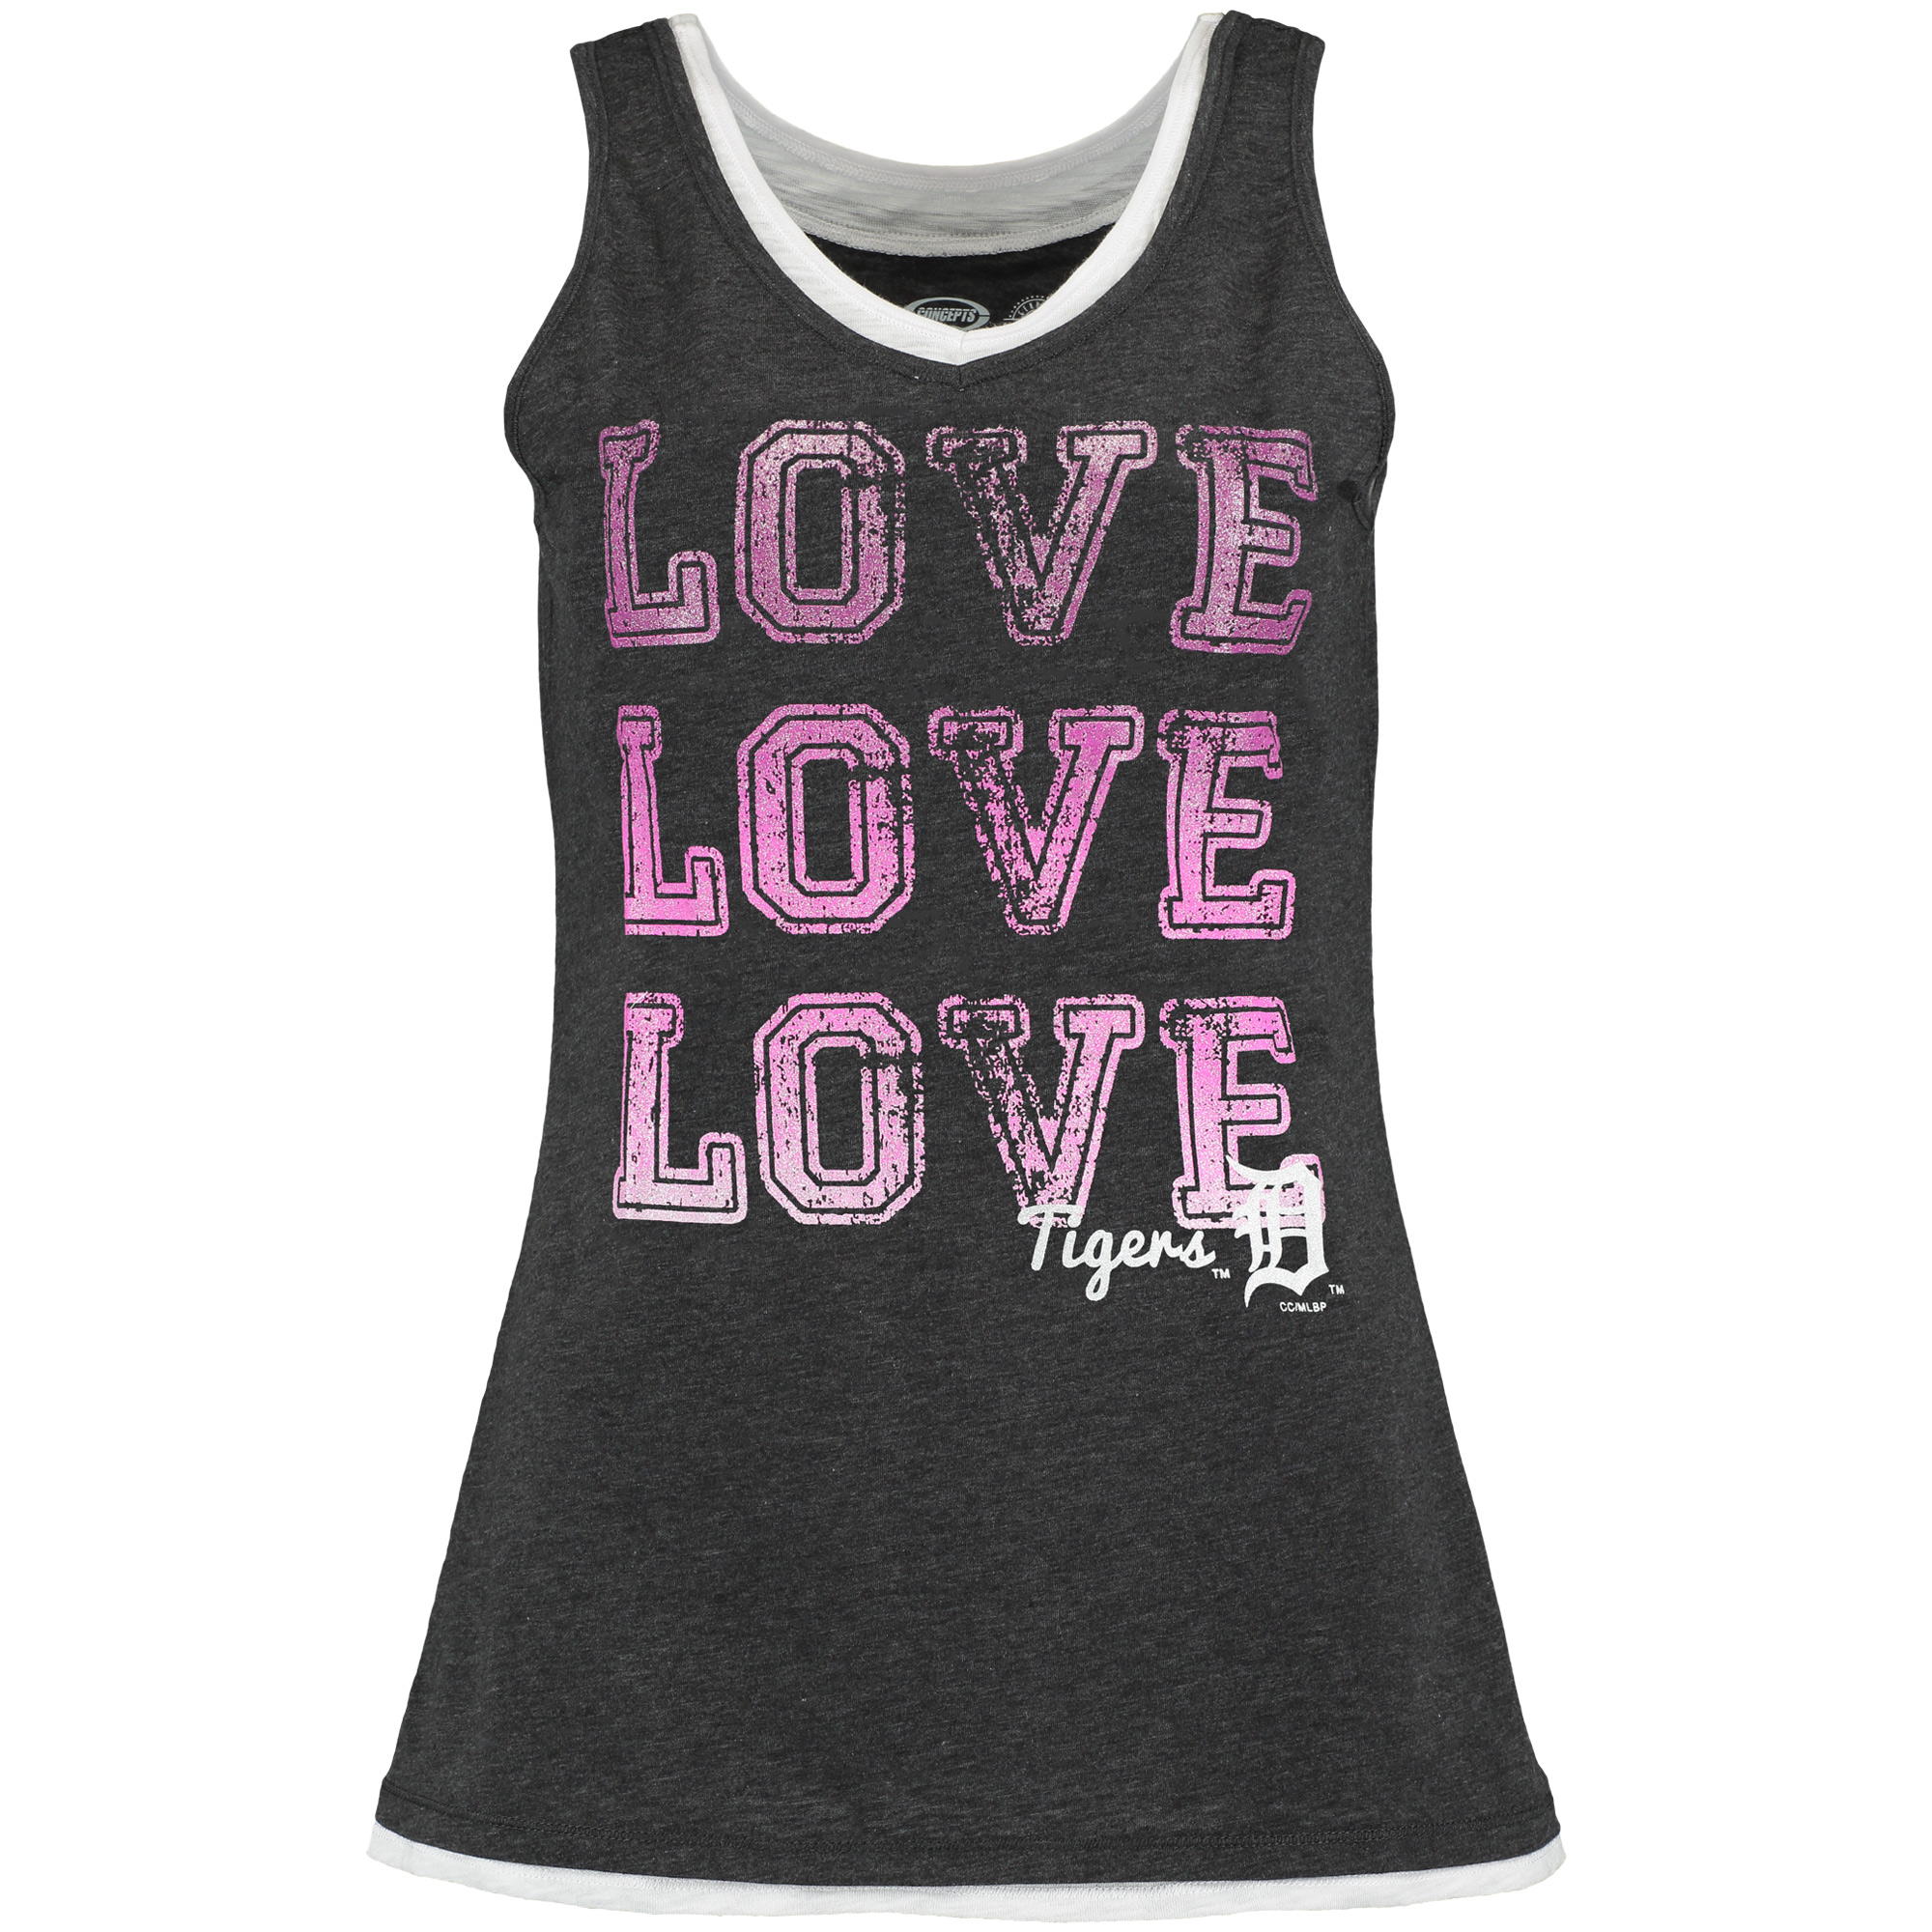 Detroit Tigers Concepts Sport Women's Crush Layered Tank Top Charcoal M by COLLEGE CONCEPTS